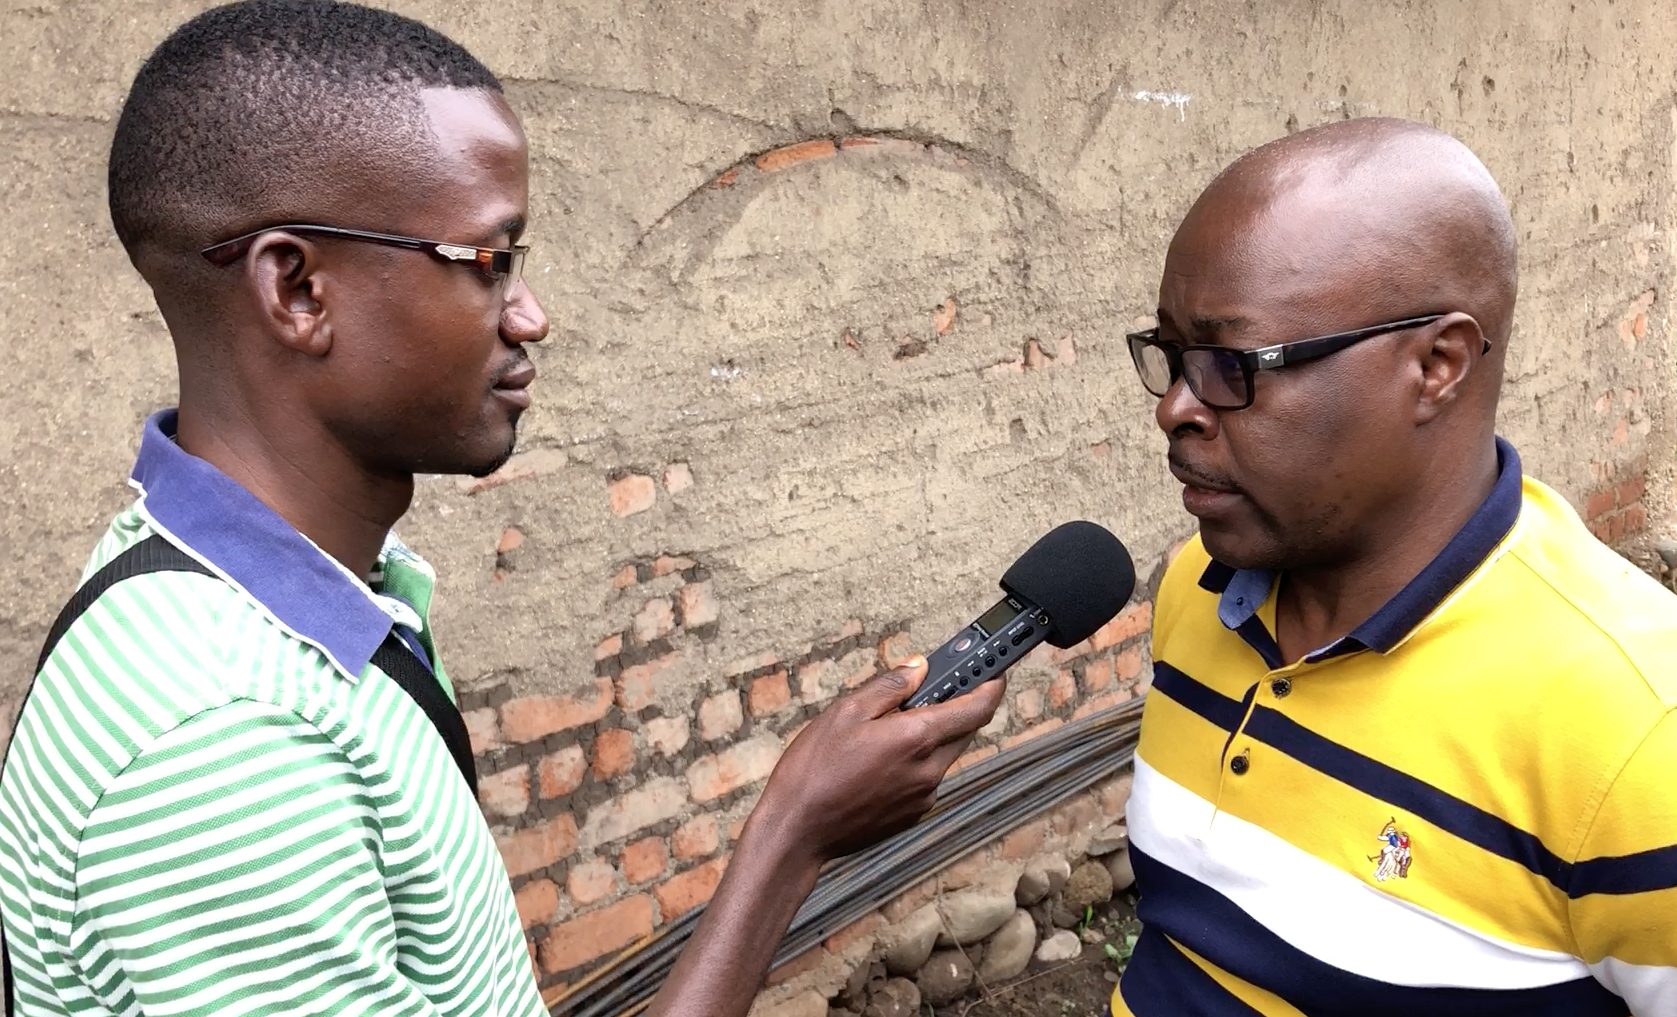 Hon Albert Baliesima, MP for Beni Territory being interviewed by Baraka Bacweki from Umoja FM in Nobili